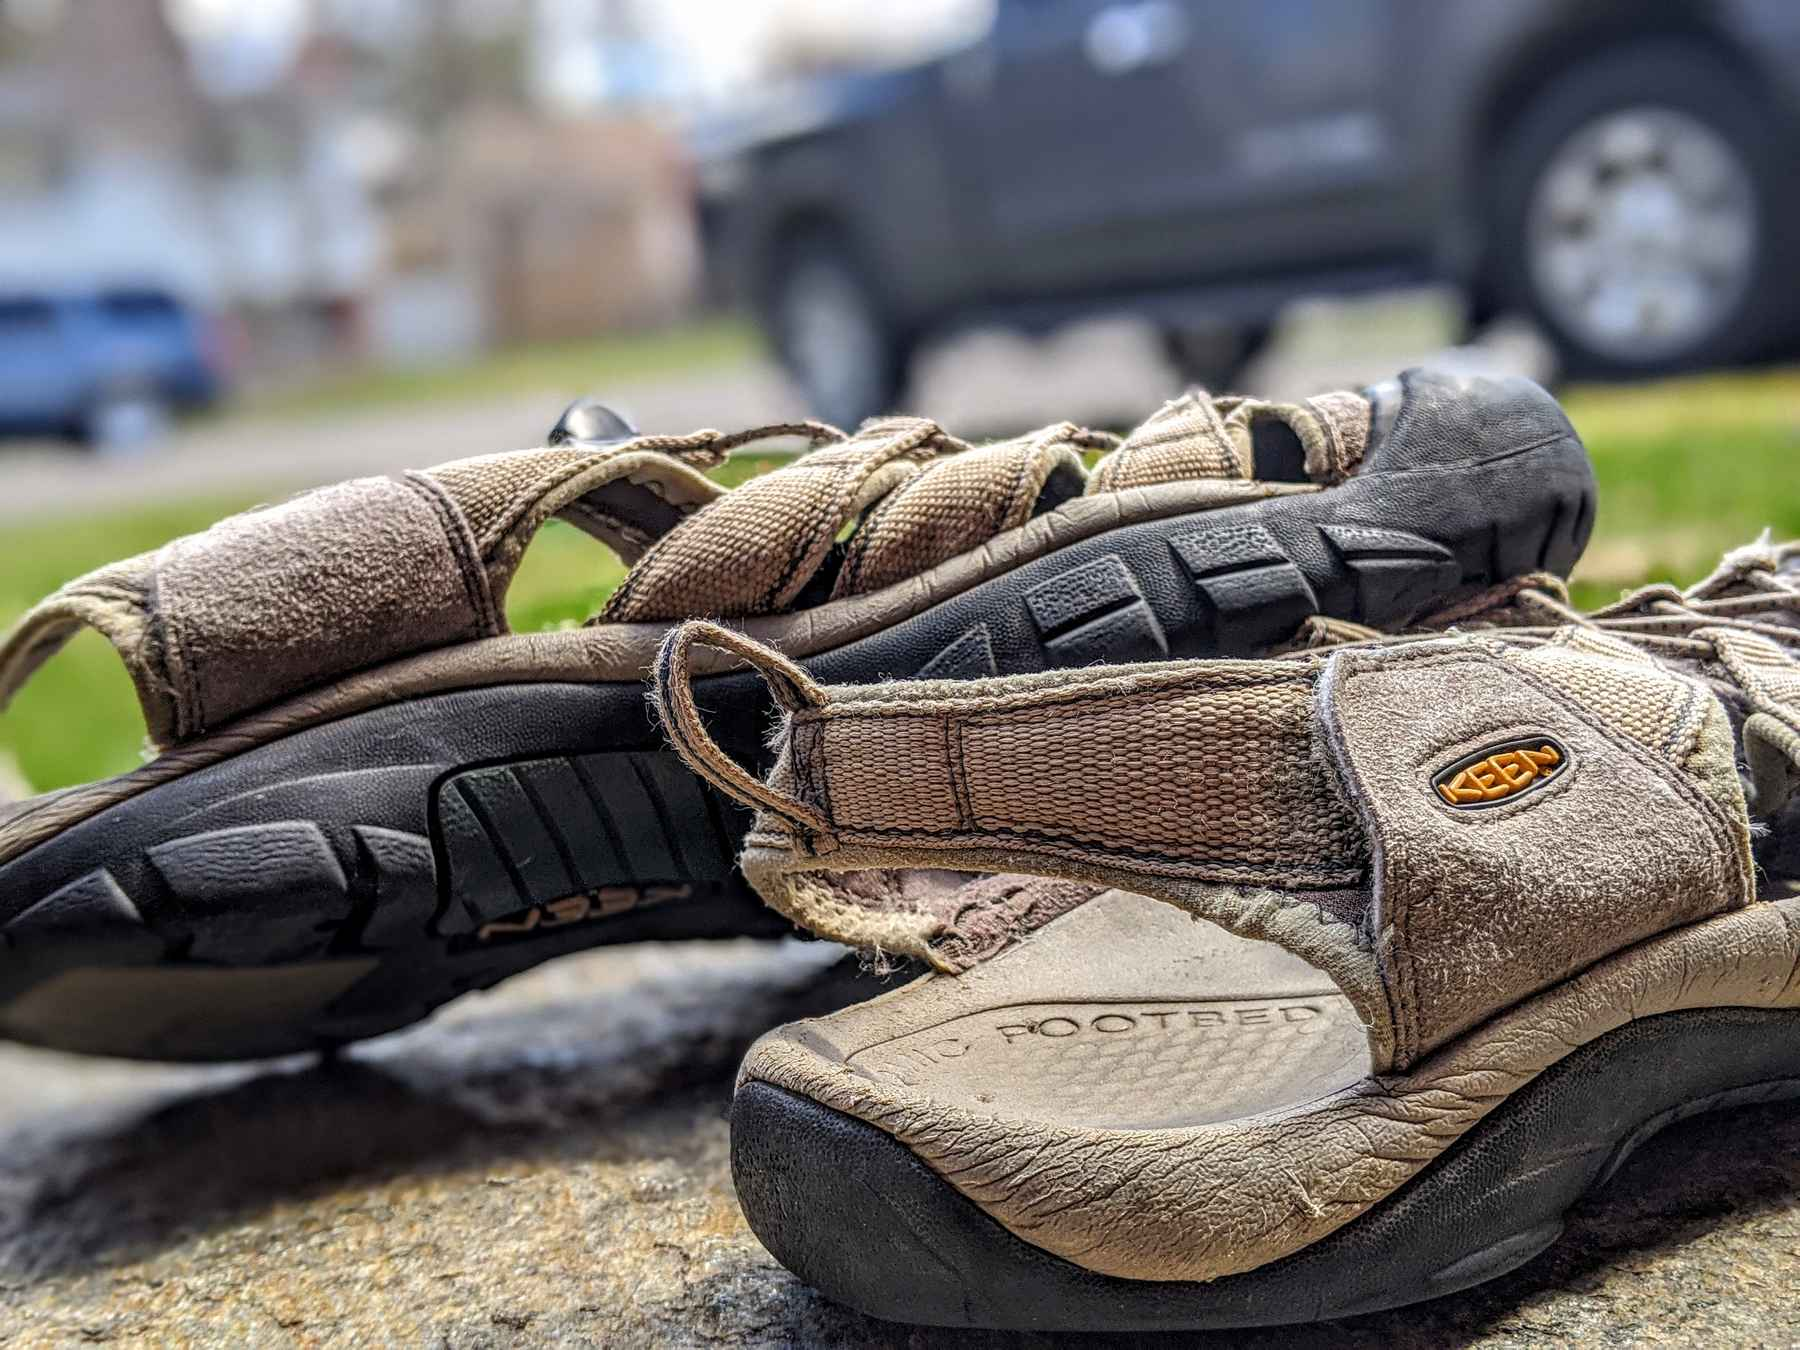 Review: Keen Newport sandals—Ugly, but